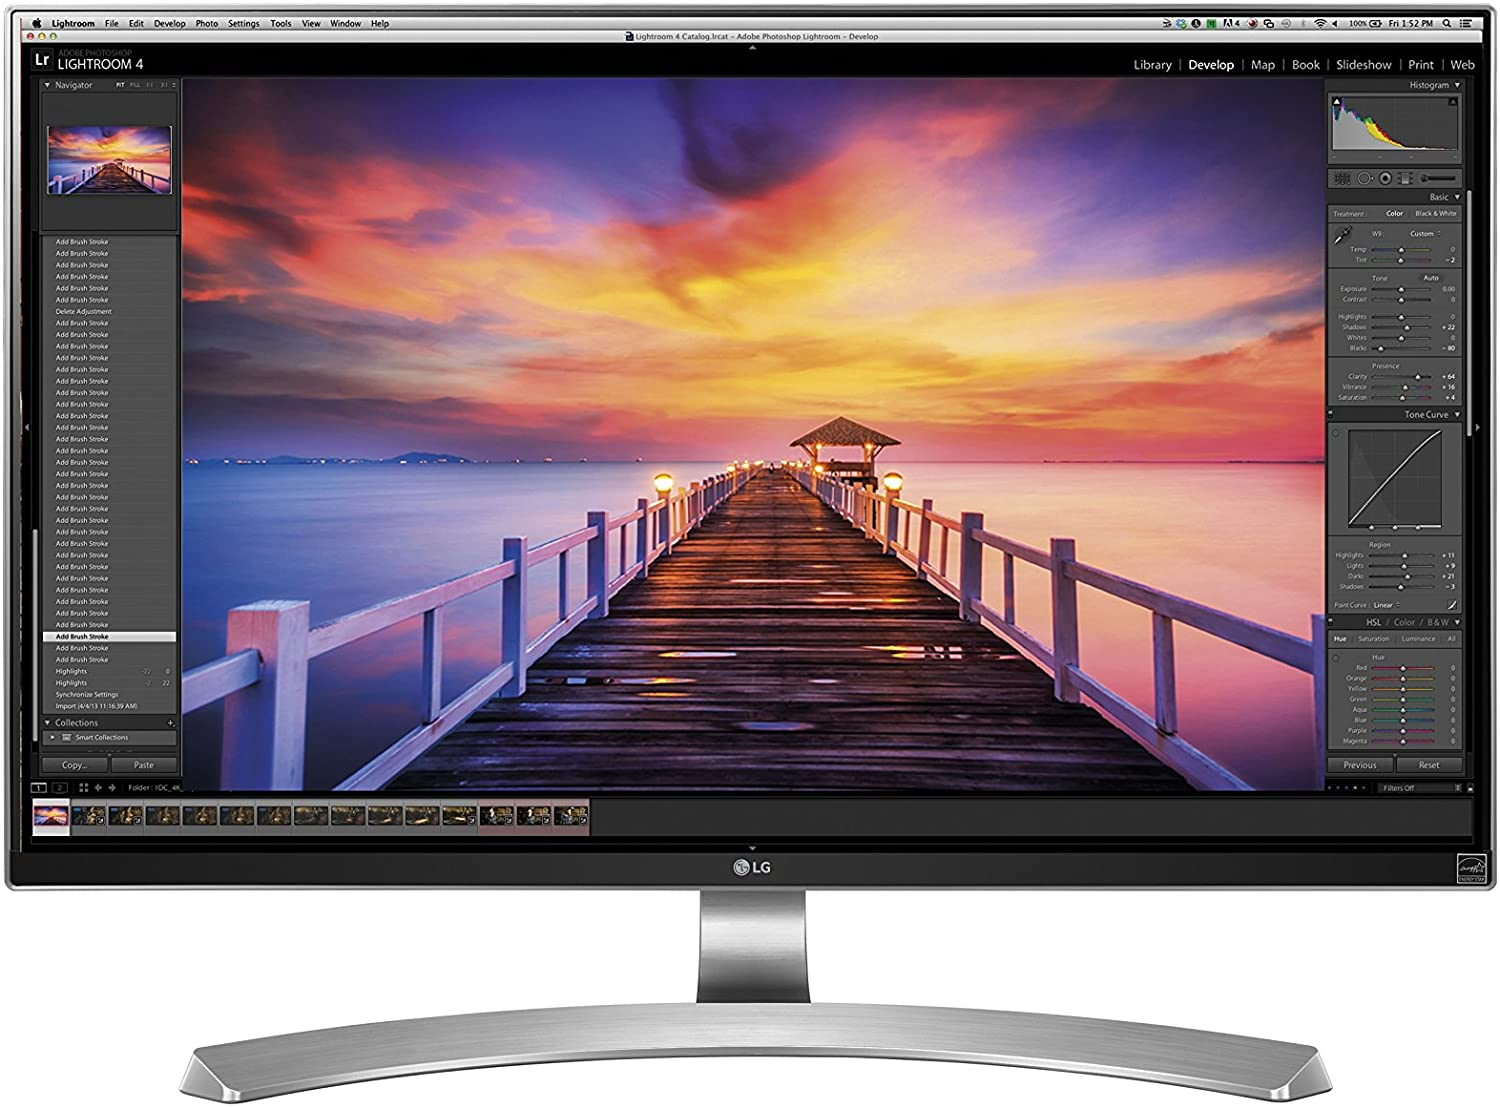 "27"" LG UD88-W 4K UHD Professional Monitor with USB Type-C is now priced at $446"